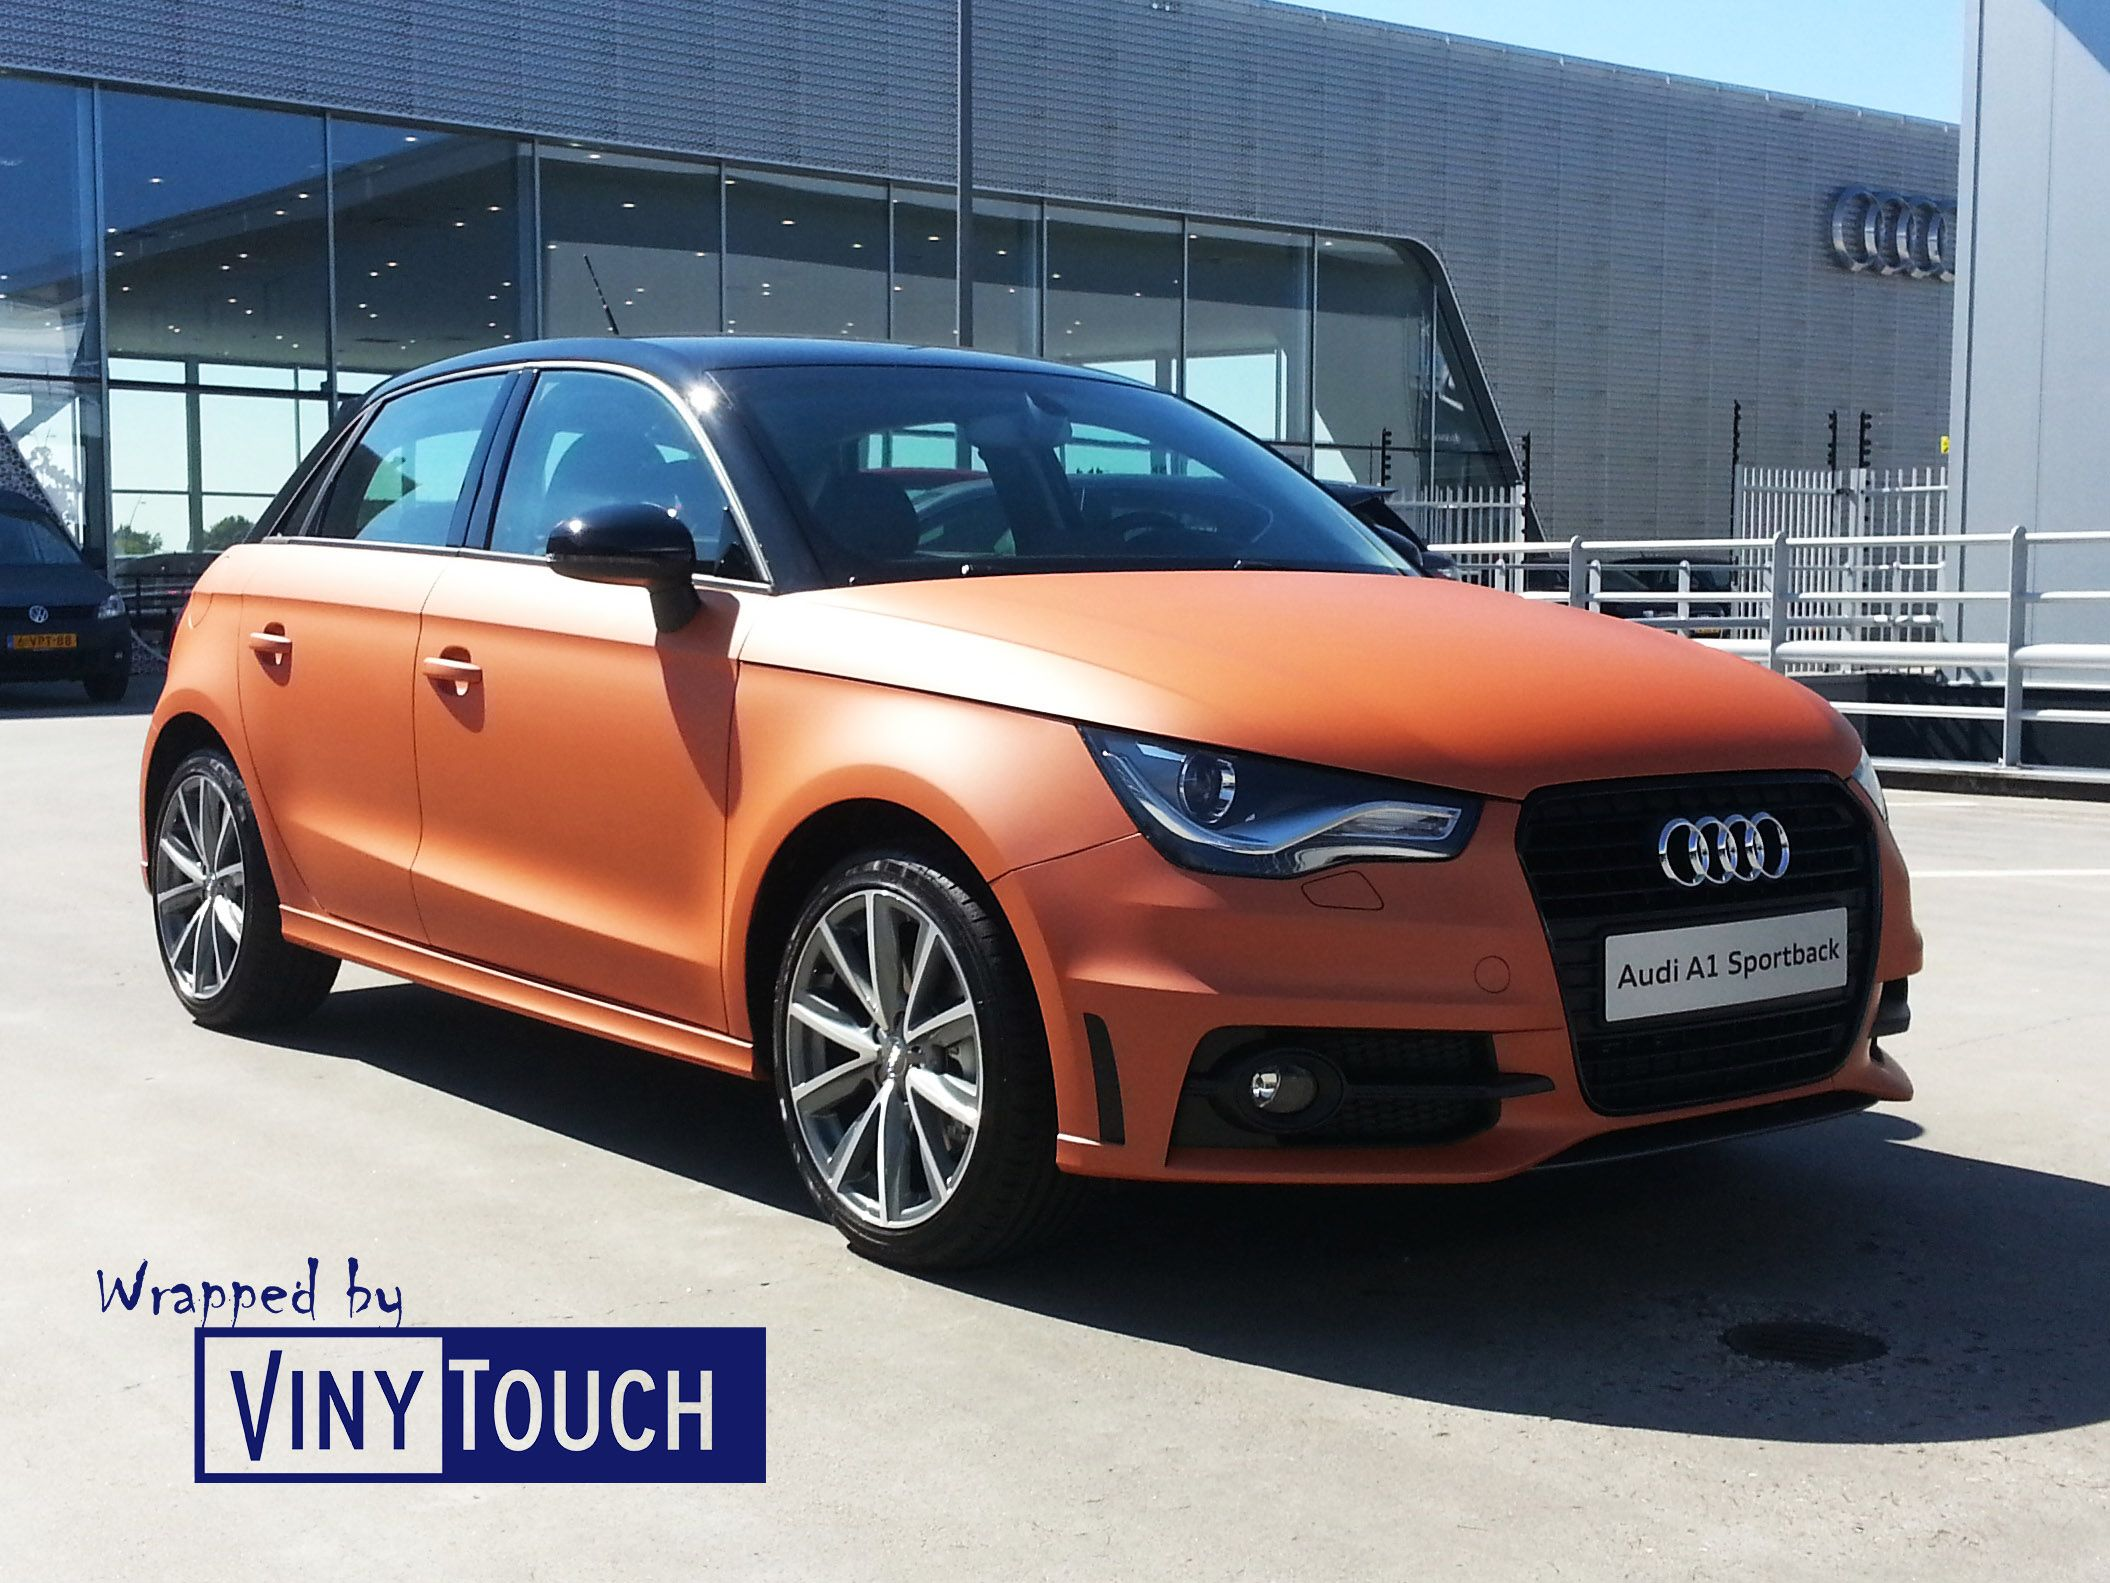 colour car metallic : Audi A1 Half Wrap Copper Matte Metallic Vinytouch